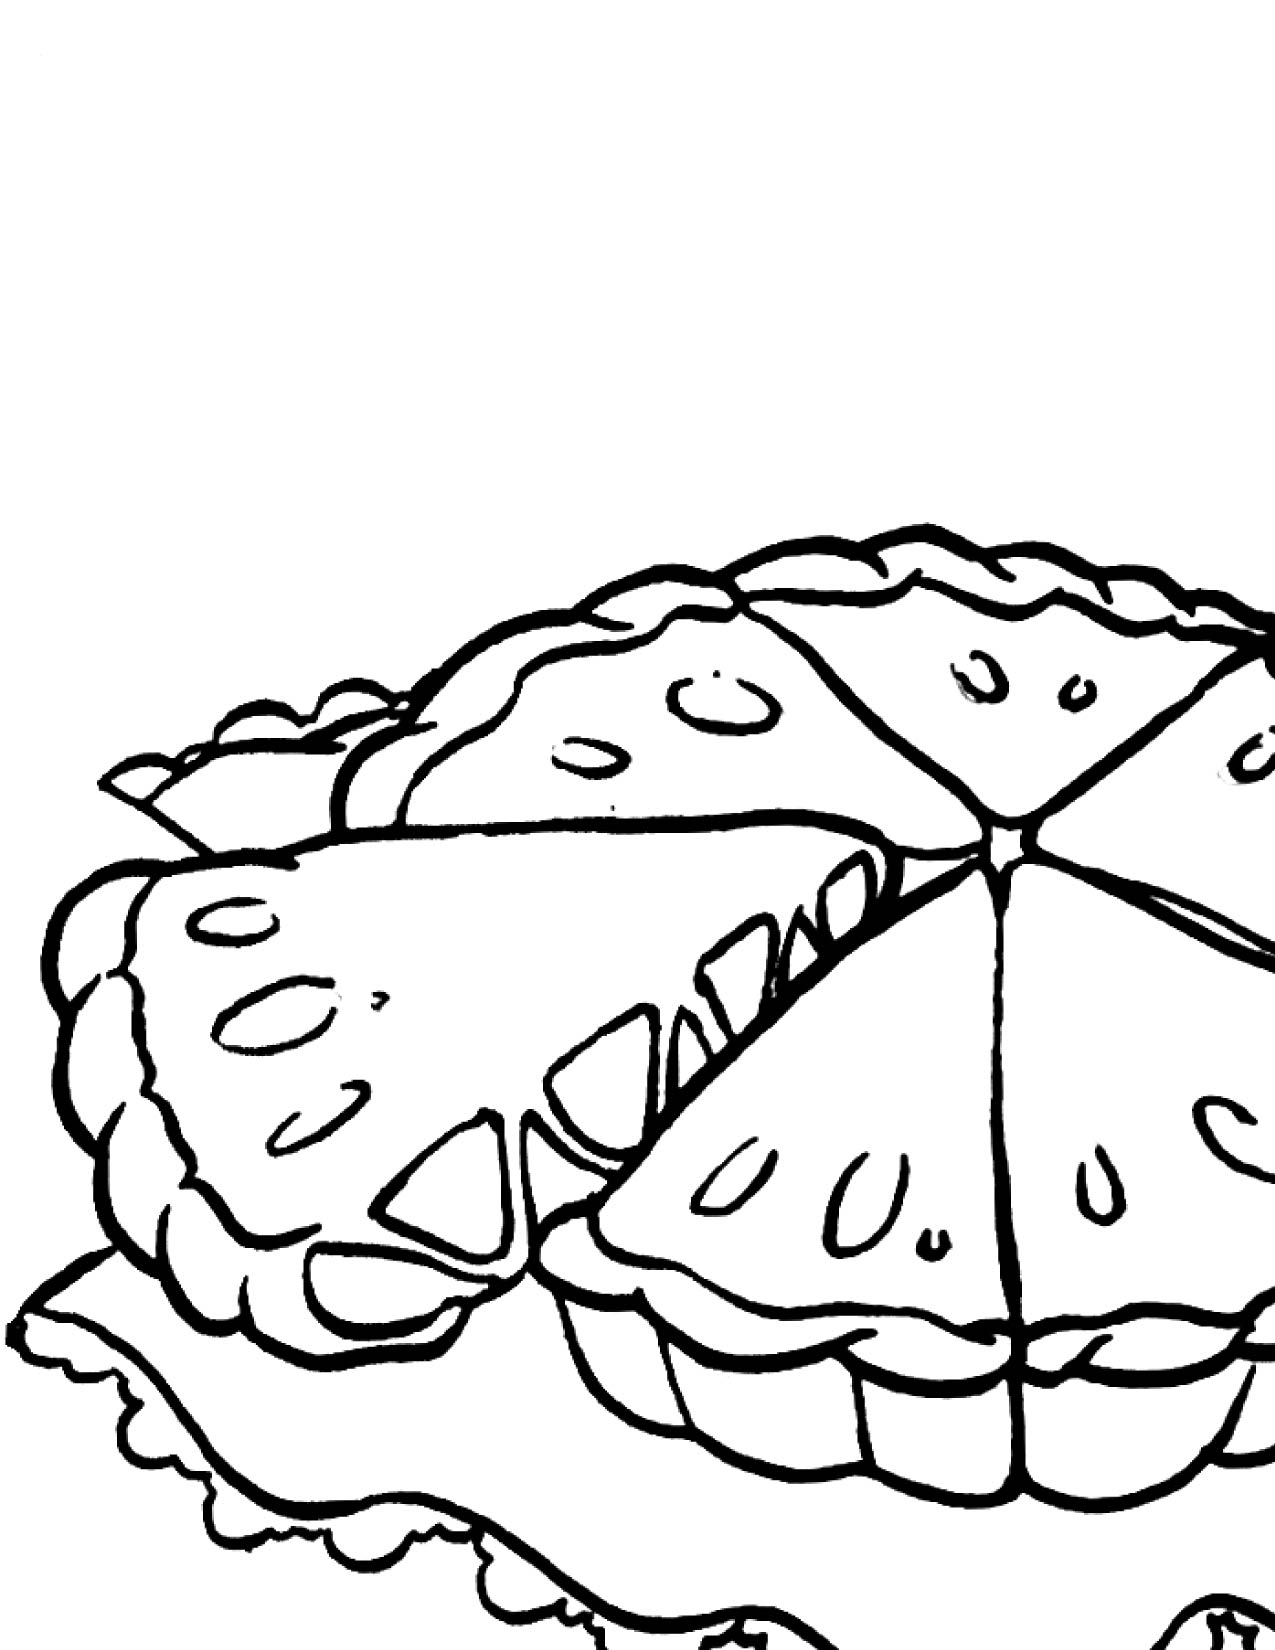 Apple Pie Coloring Pages Coloring